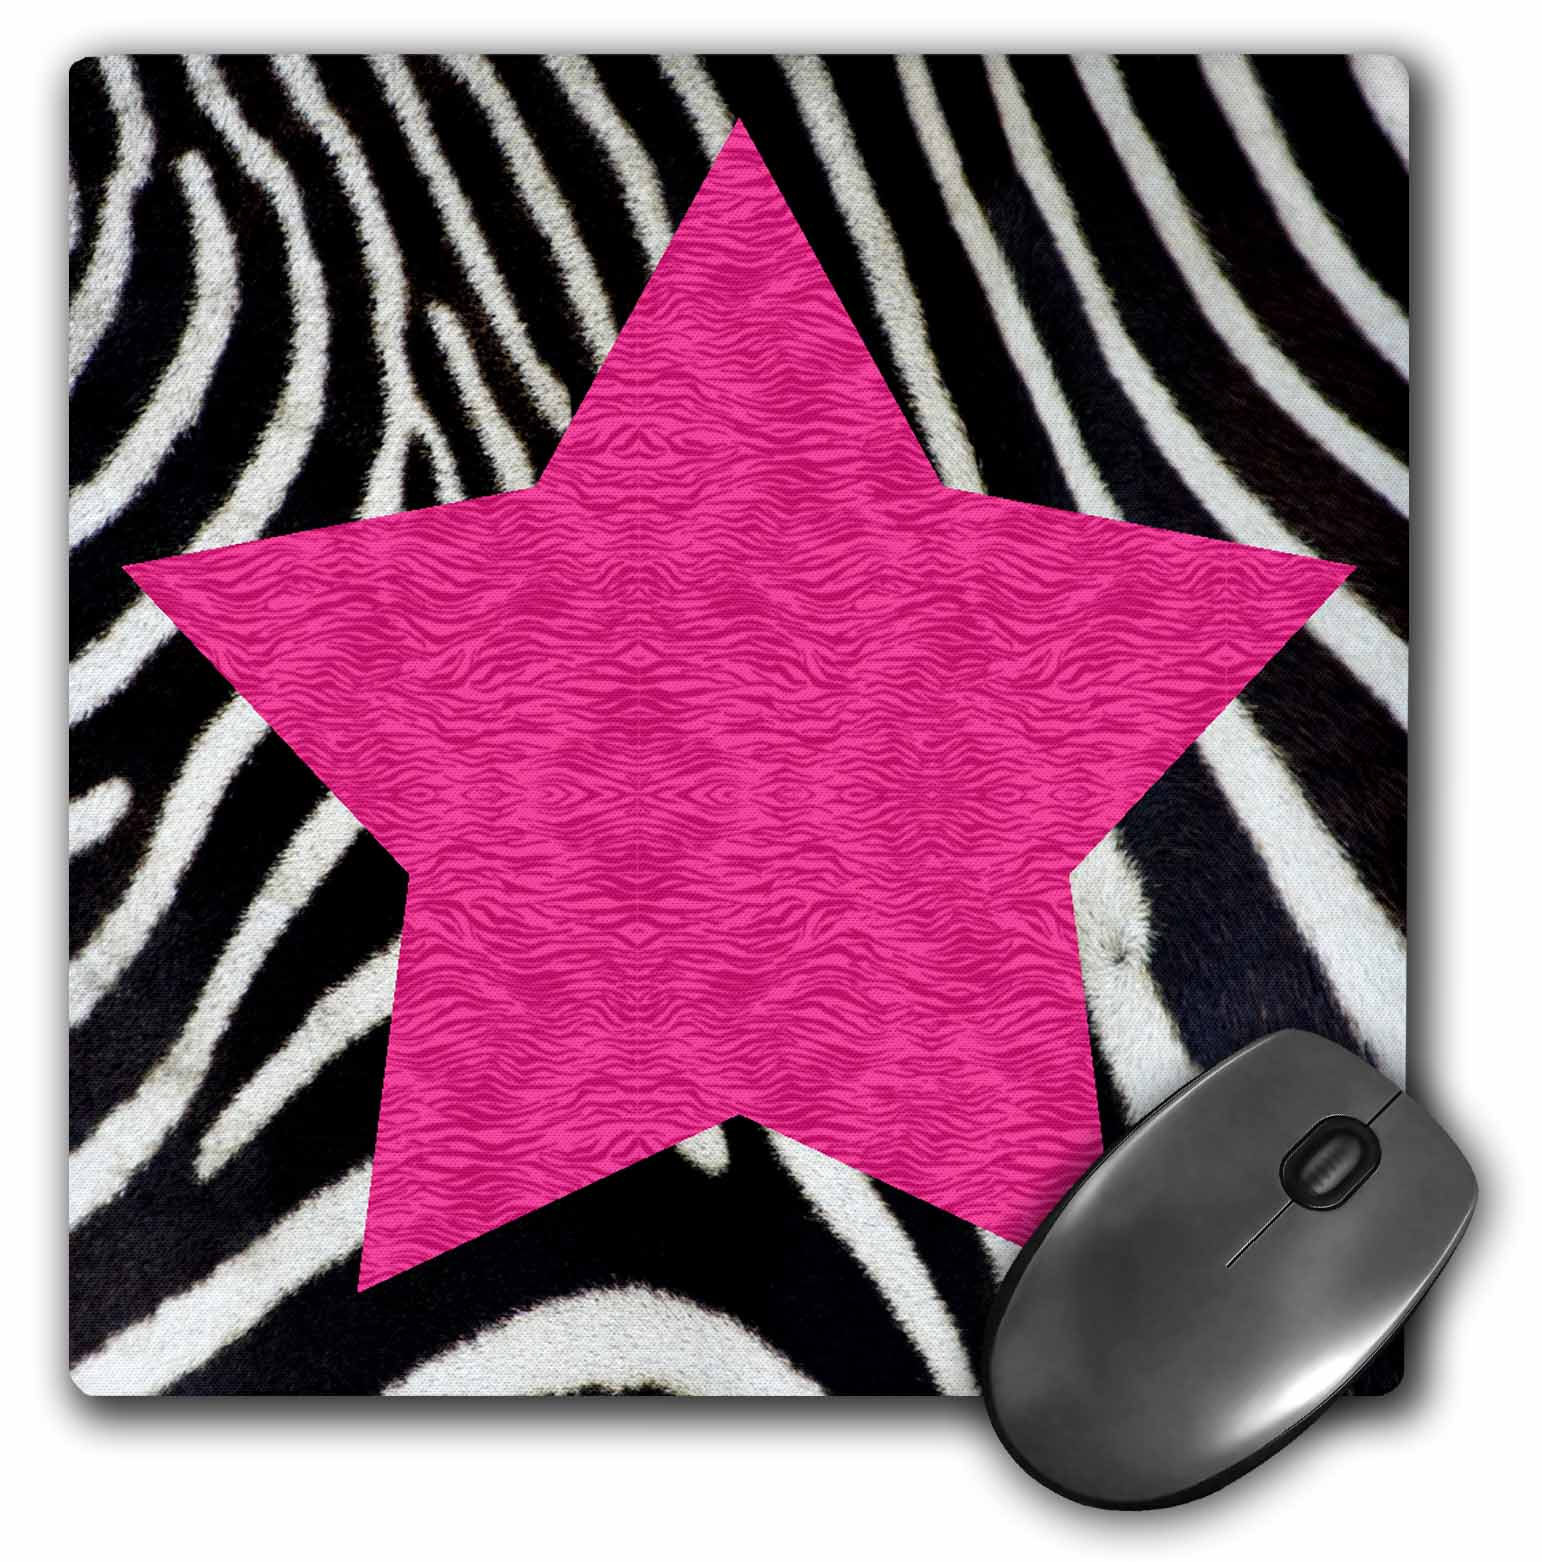 3dRose Punk Rockabilly Zebra Animal Stripe Pink Star Print, Mouse Pad, 8 by 8 inches